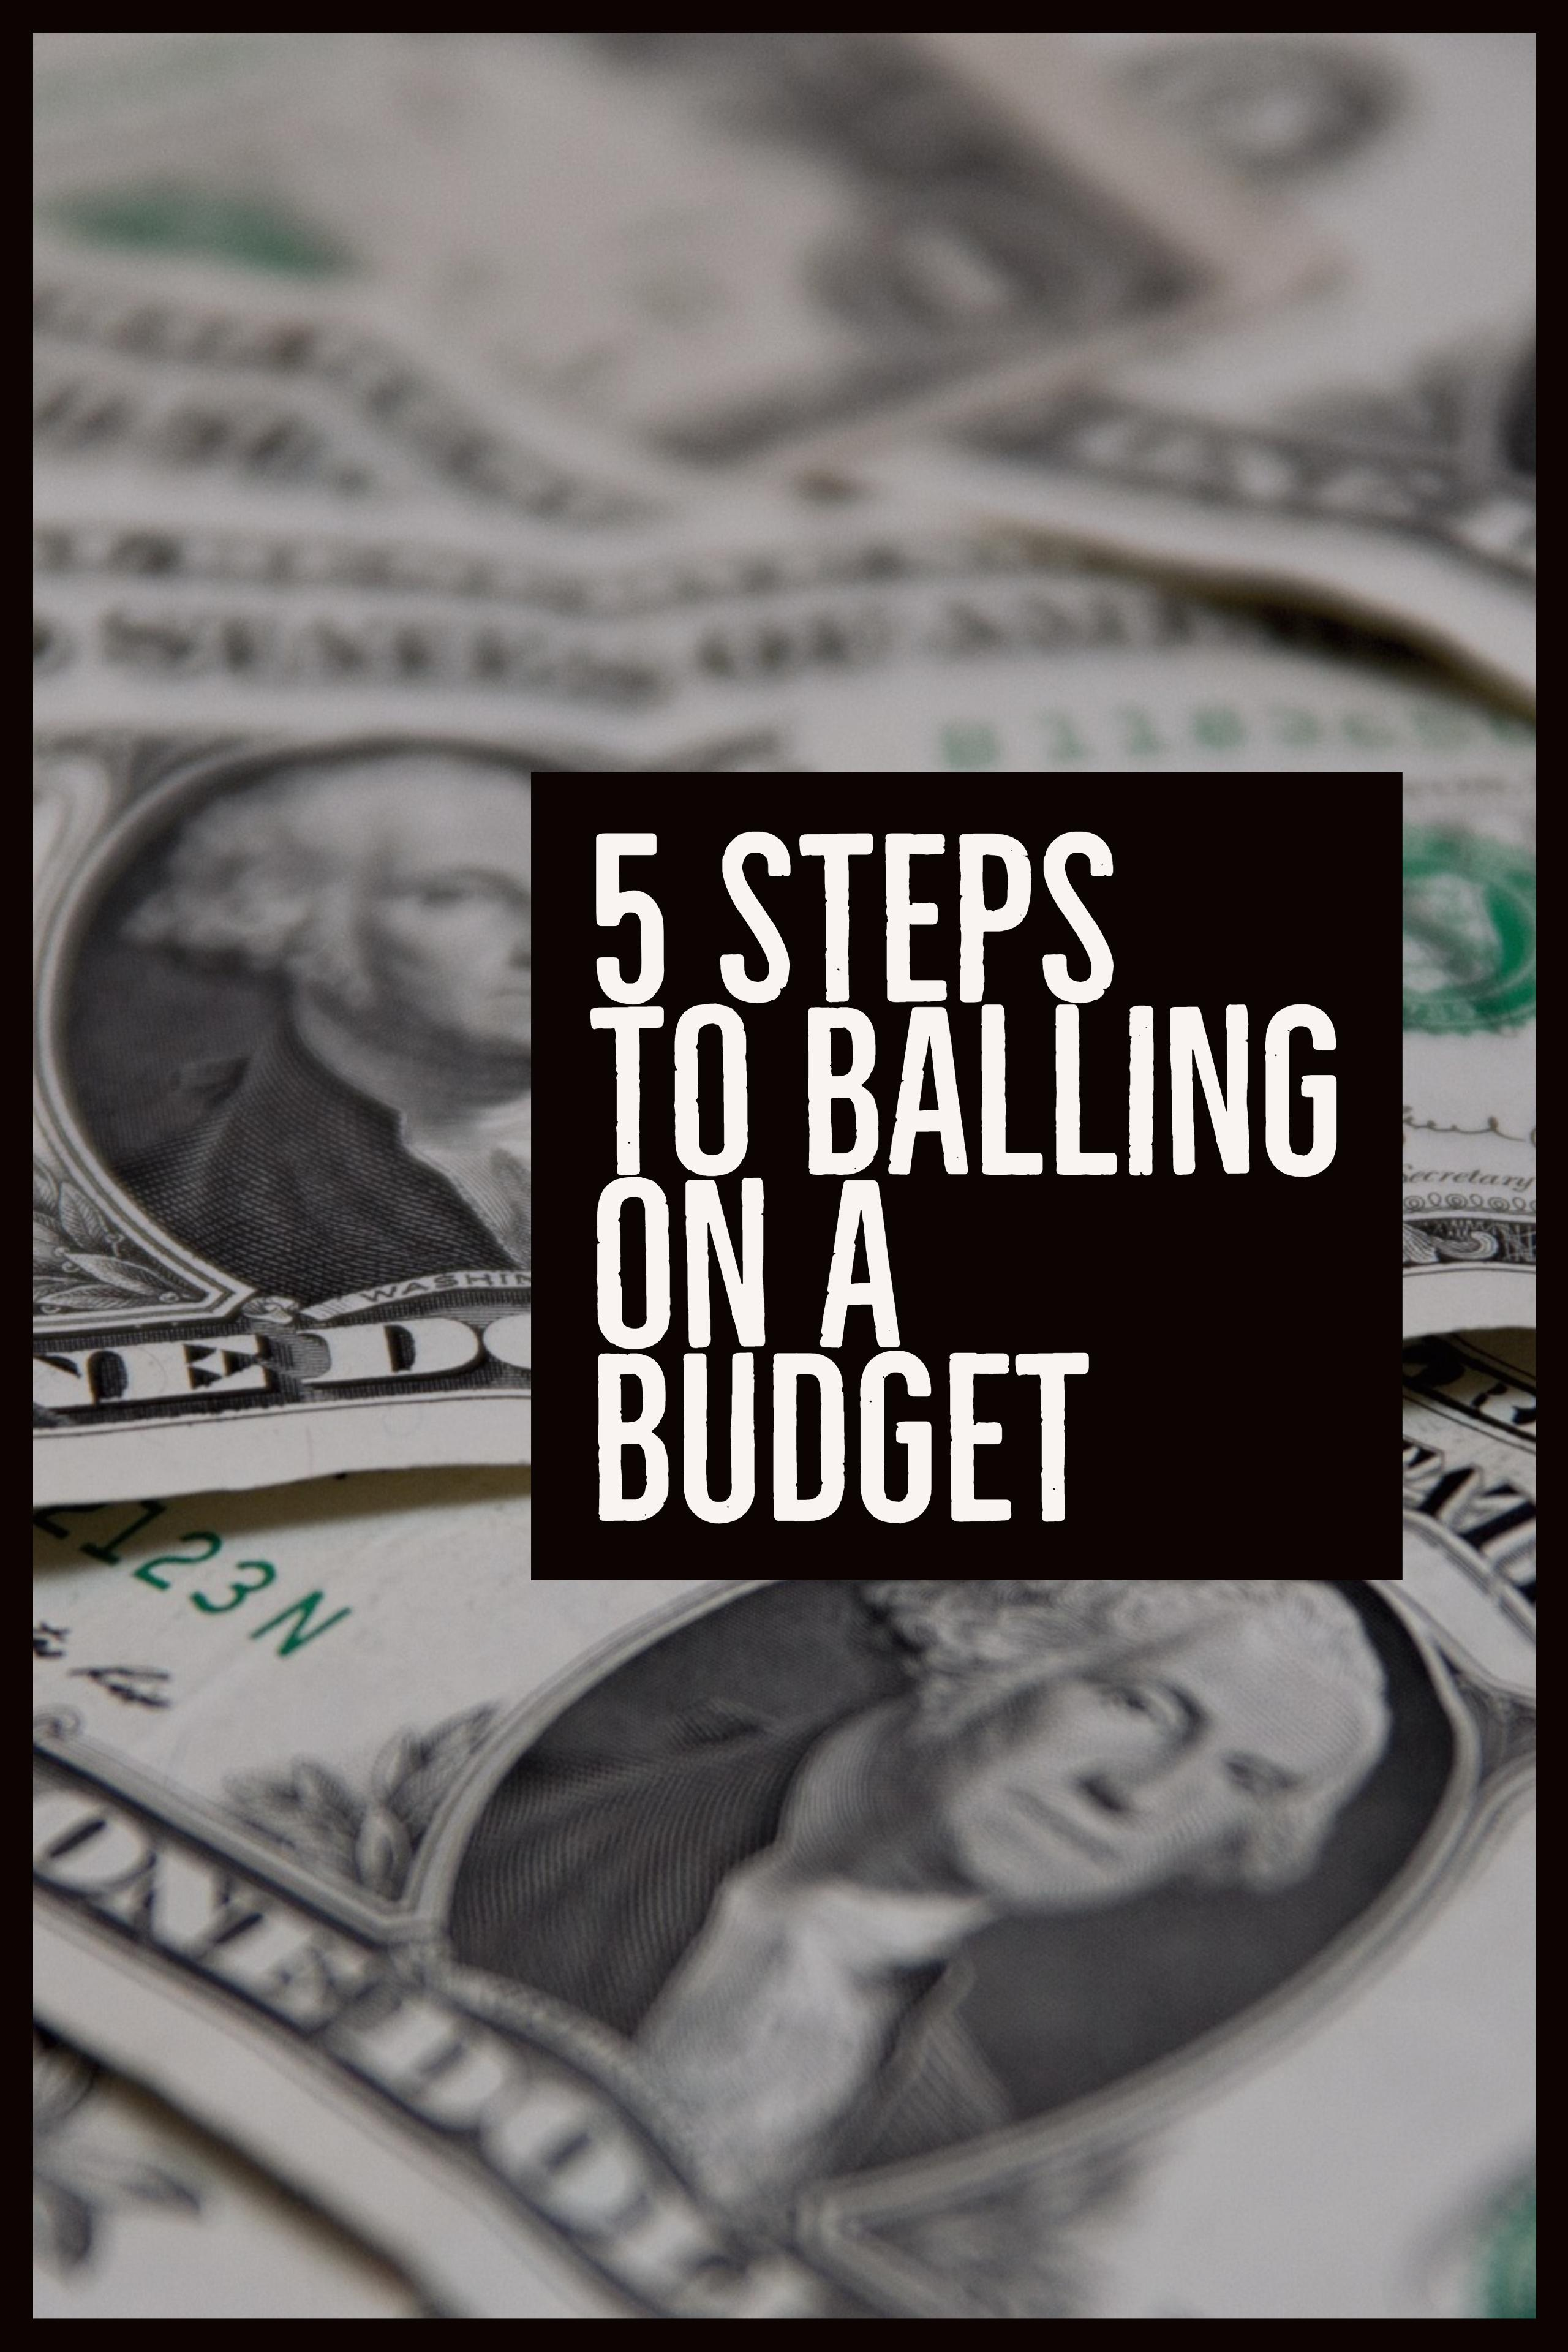 Read this post and more instantly by signing up for the Wealth Noir Preview, and get a chance to win an Amazon Gift Card. Sign up at wealthnoir.com.  My budget allows me to ball on the things I want without worry. It\'s easy and ensures I stay on track to build wealth. Learn the 5 steps to start balling. #wealthnoir #balling #havingthangs